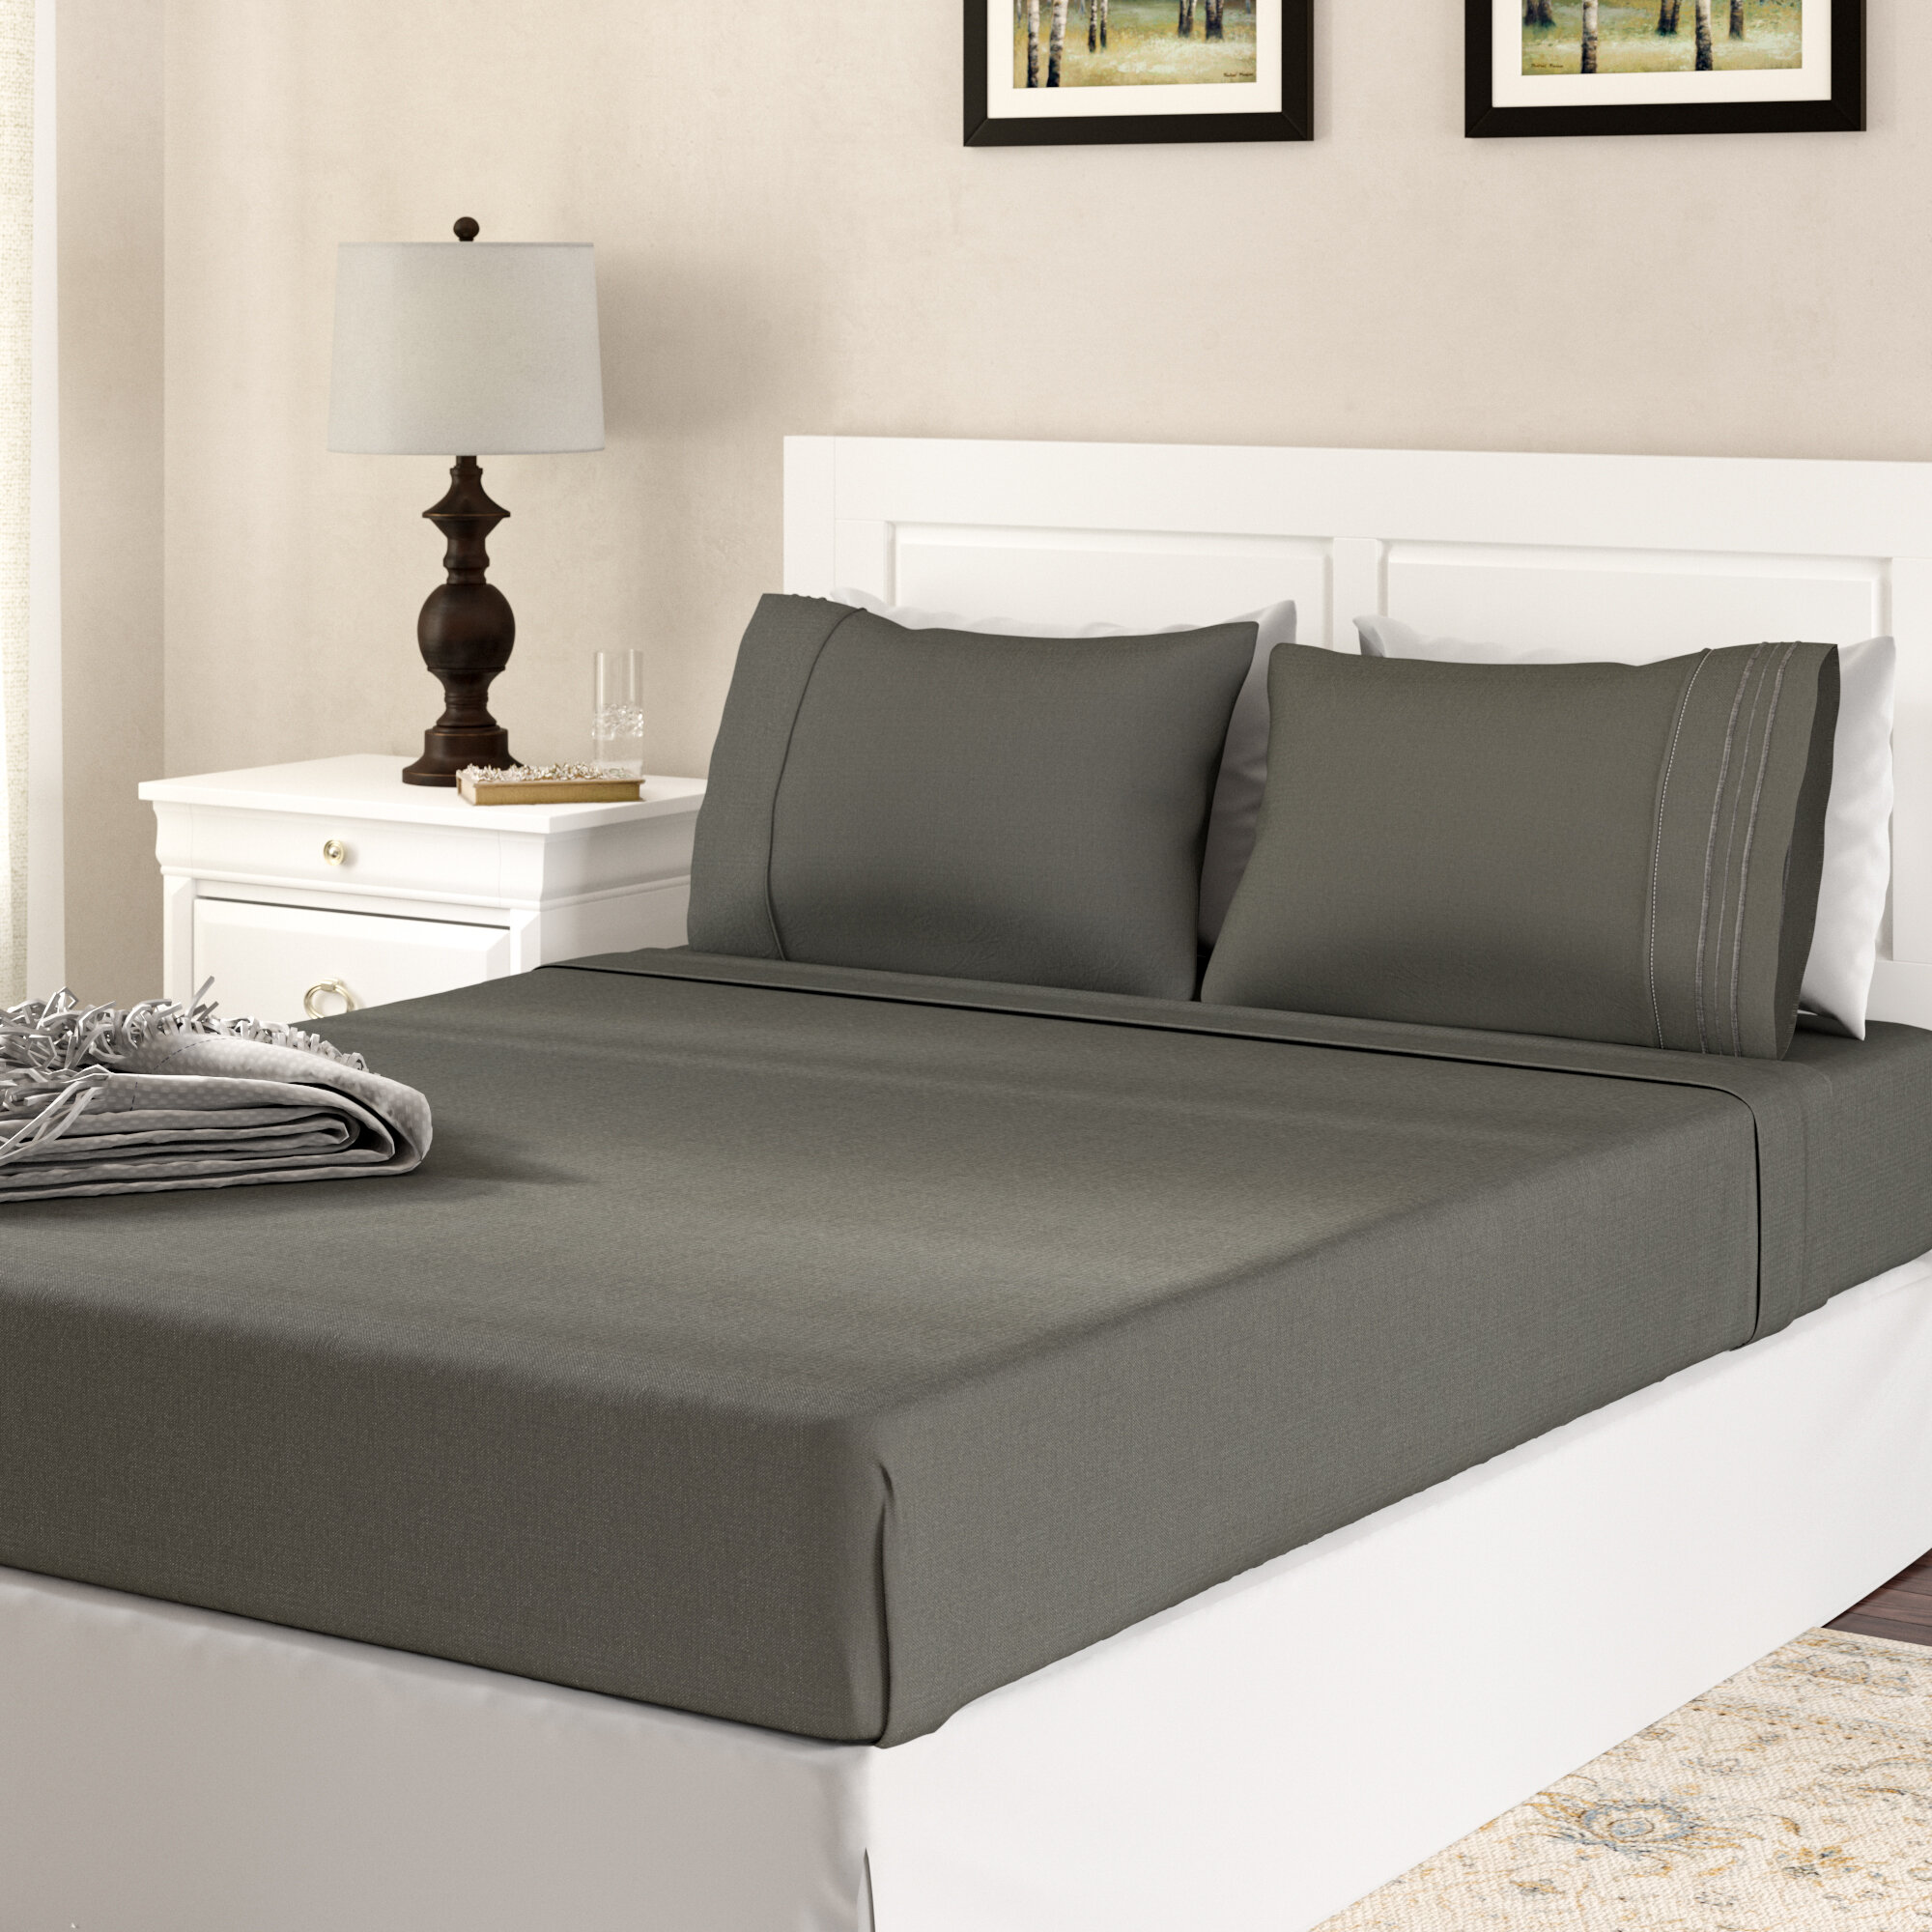 The Twillery Co Alonzo 1800 Series Bamboo Blended Sheet Set Reviews Wayfair